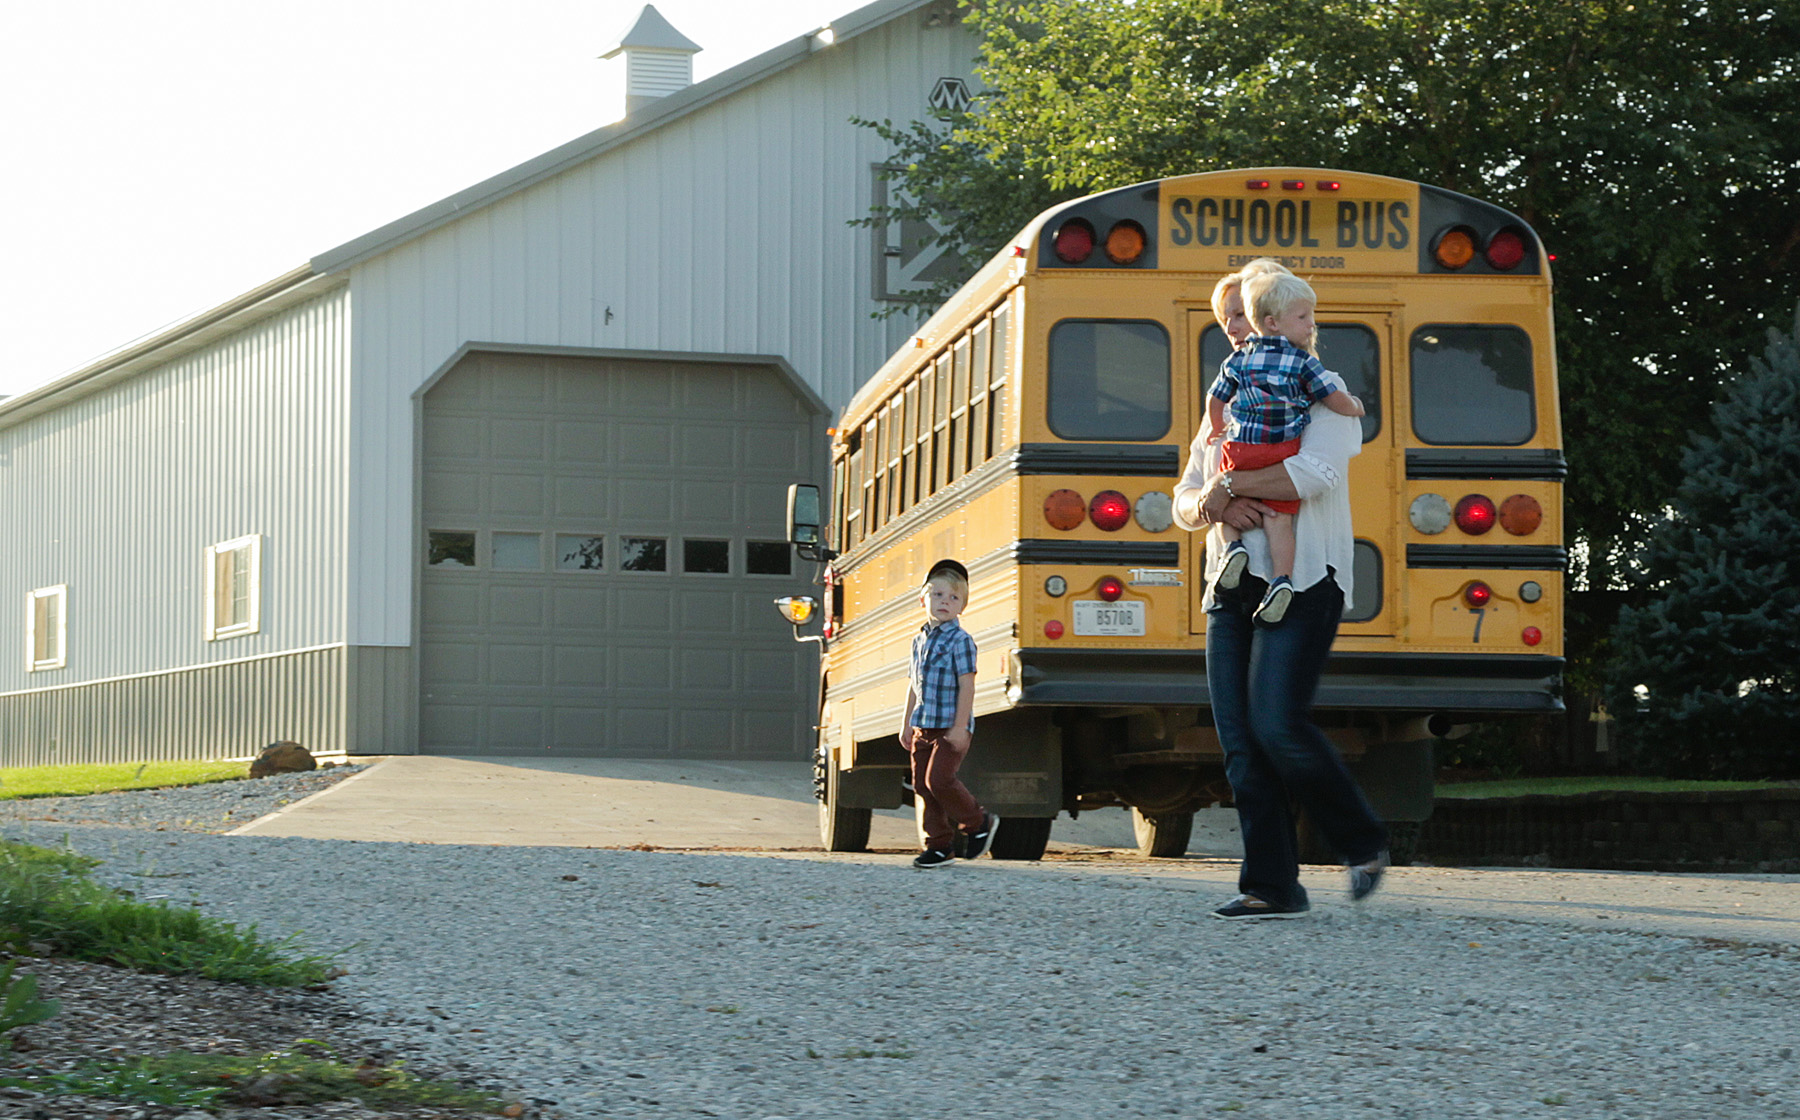 Image of Keesling Farms Growers for Red Gold Tomatoes Kim Keesling wife holding grandchild at the back of a school bus